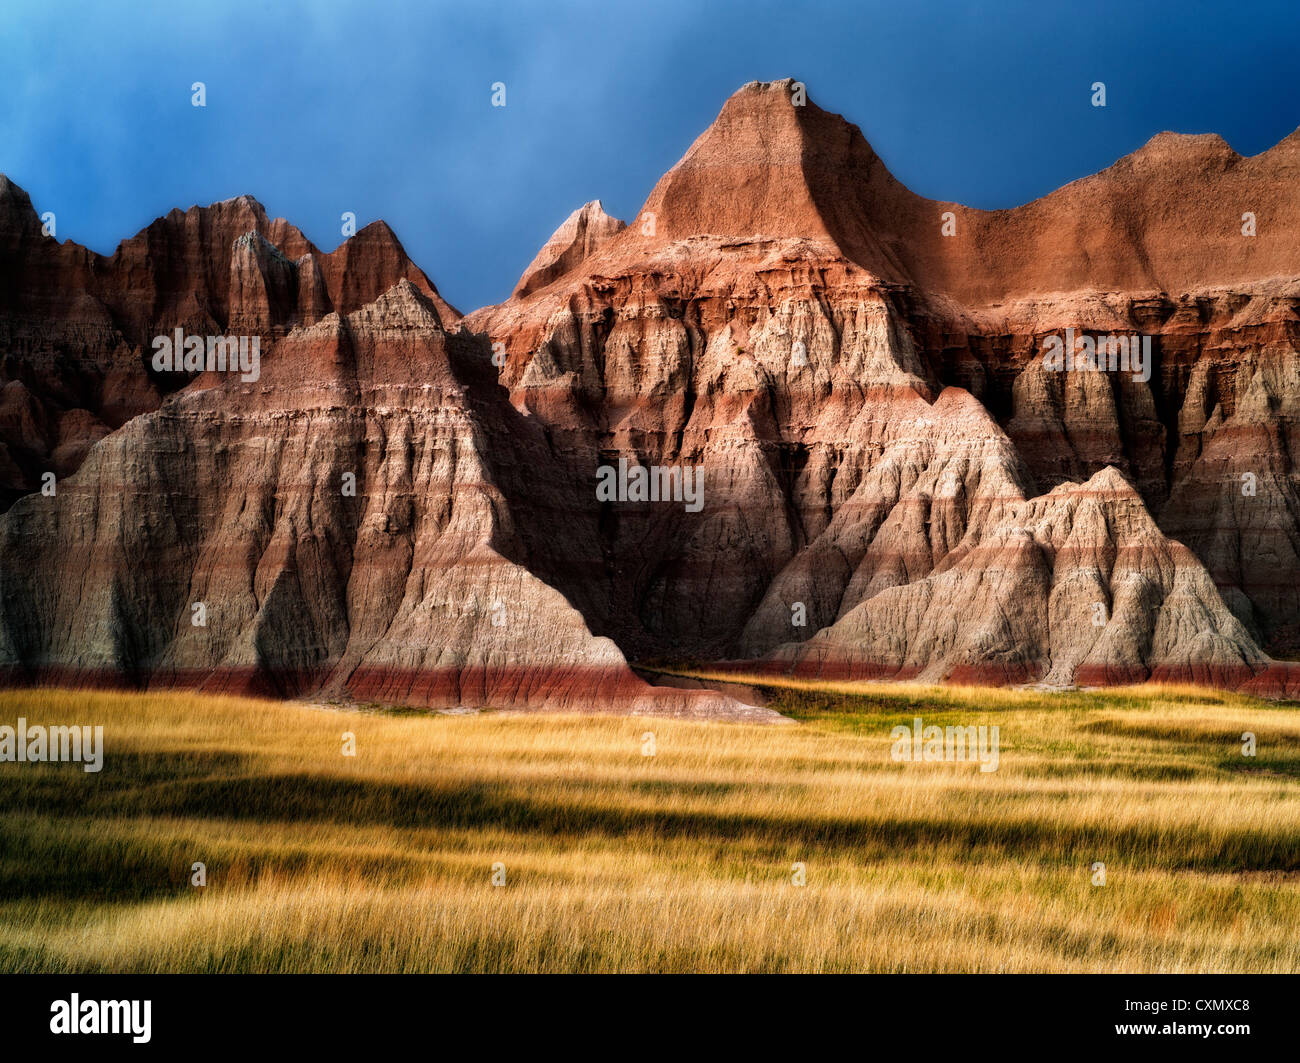 Rasen-Wiese und bunten Steinen. Badlands Nationalpark, South Dakota. Stockbild